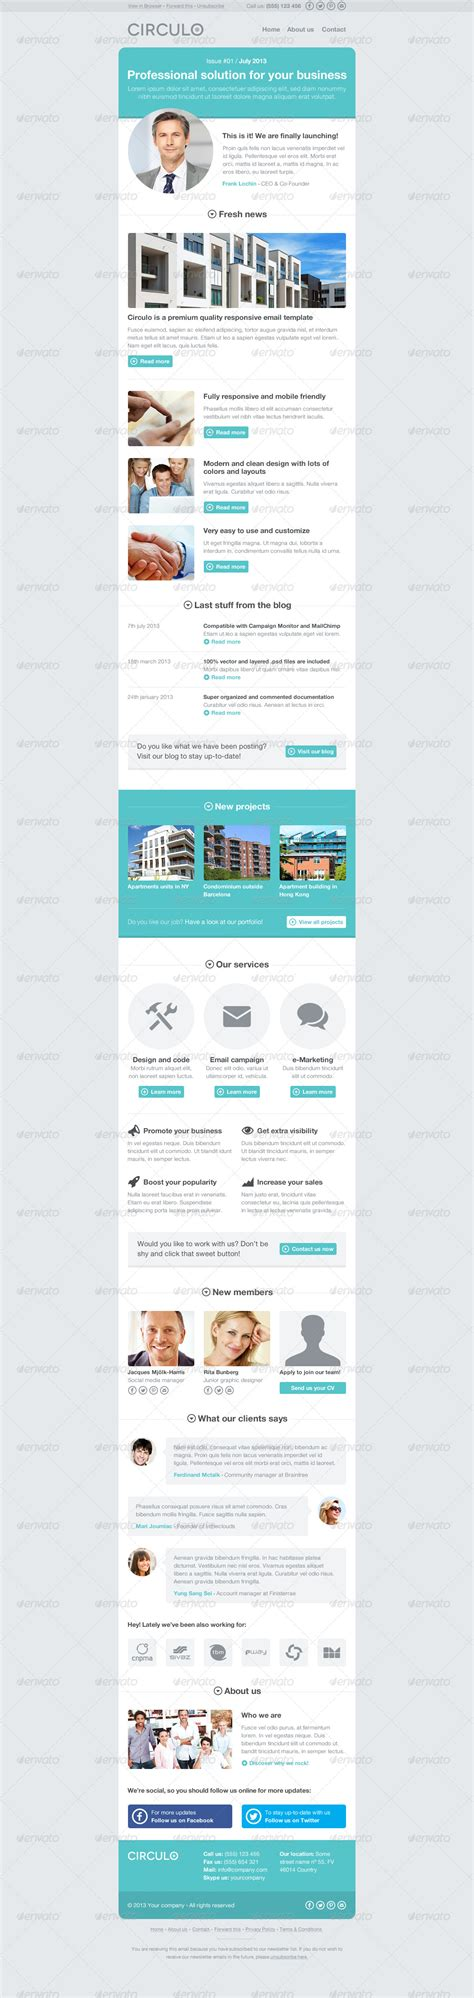 circulo psd email template by aditivadesign graphicriver